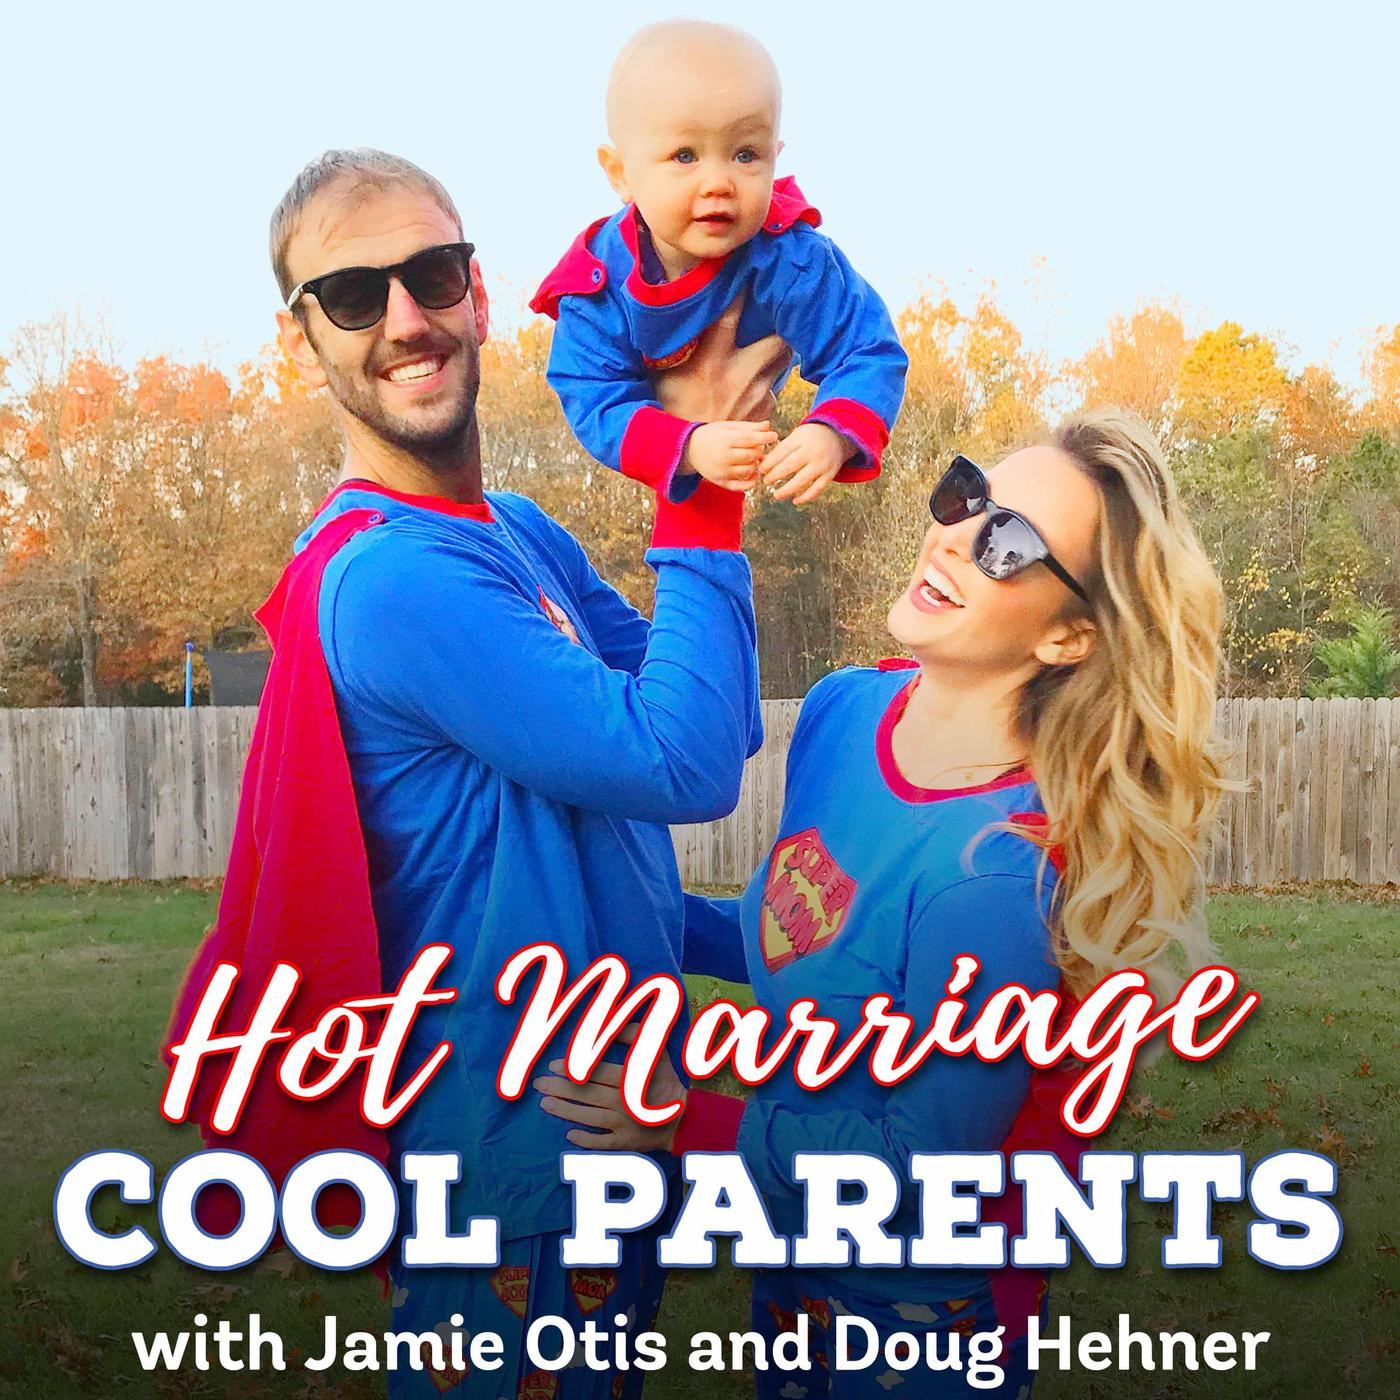 Hot Marriage. Cool Parents. (podcast) - Jamie Otis and Doug ...